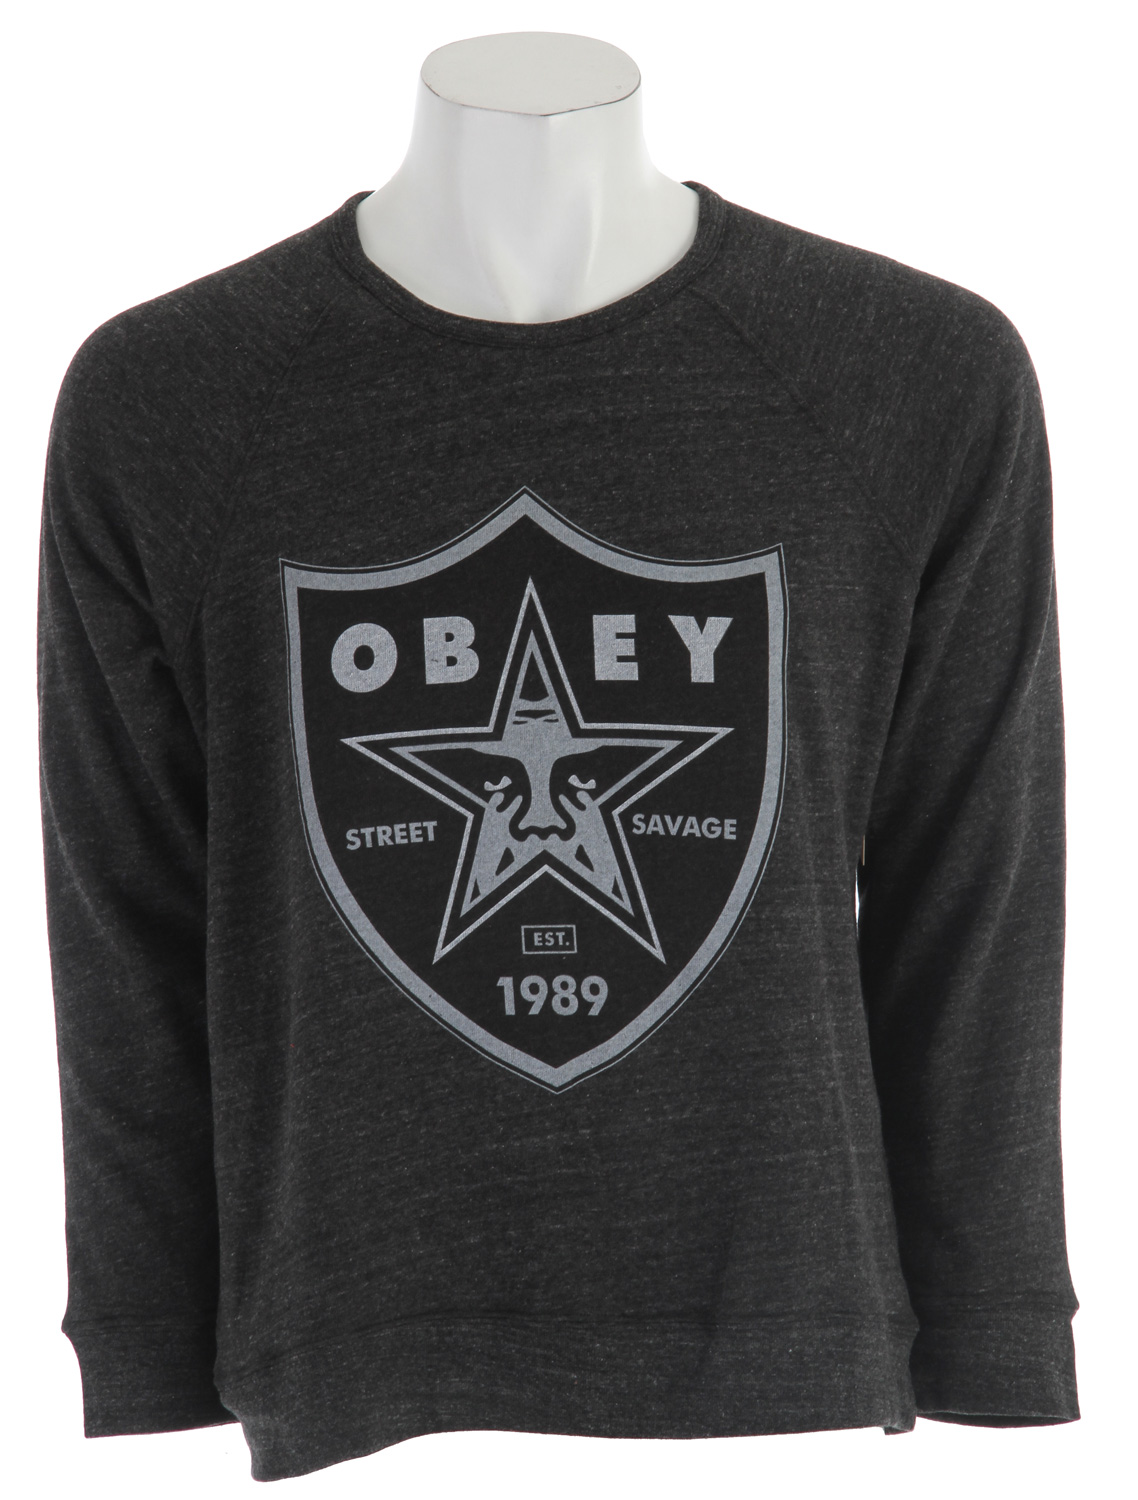 Lofty crew neck fleece with burn out graphic on chest. 50% polyester (6.25% recycled)/46% cotton (6.25% organic)/4% naturally occurring rayon - $38.95